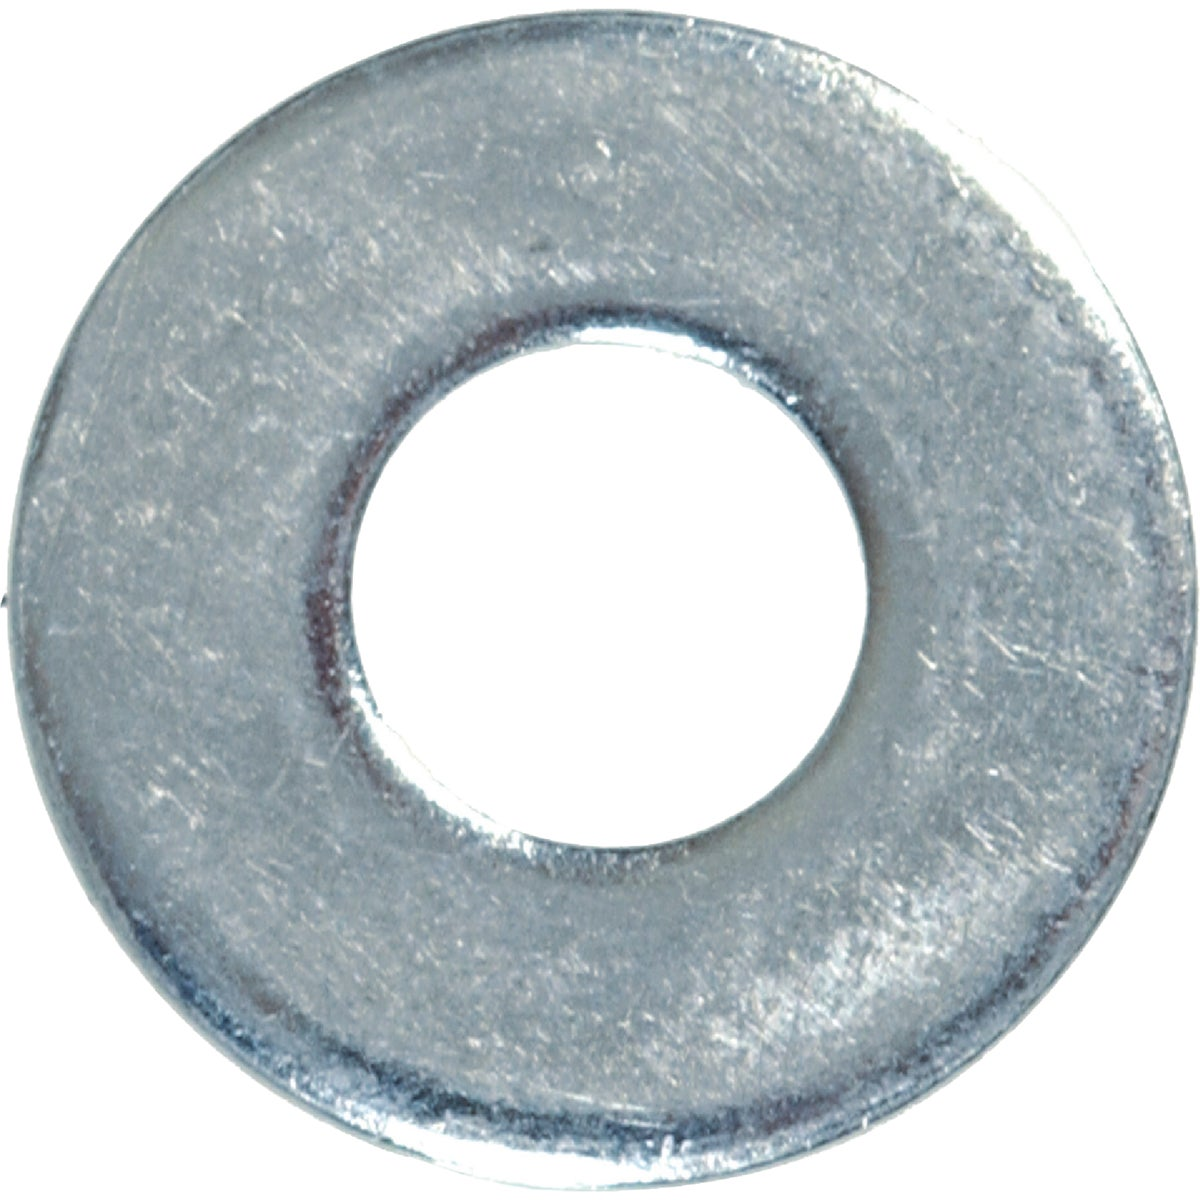 #10 STEEL FLAT WASHER - 6420 by Hillman Fastener